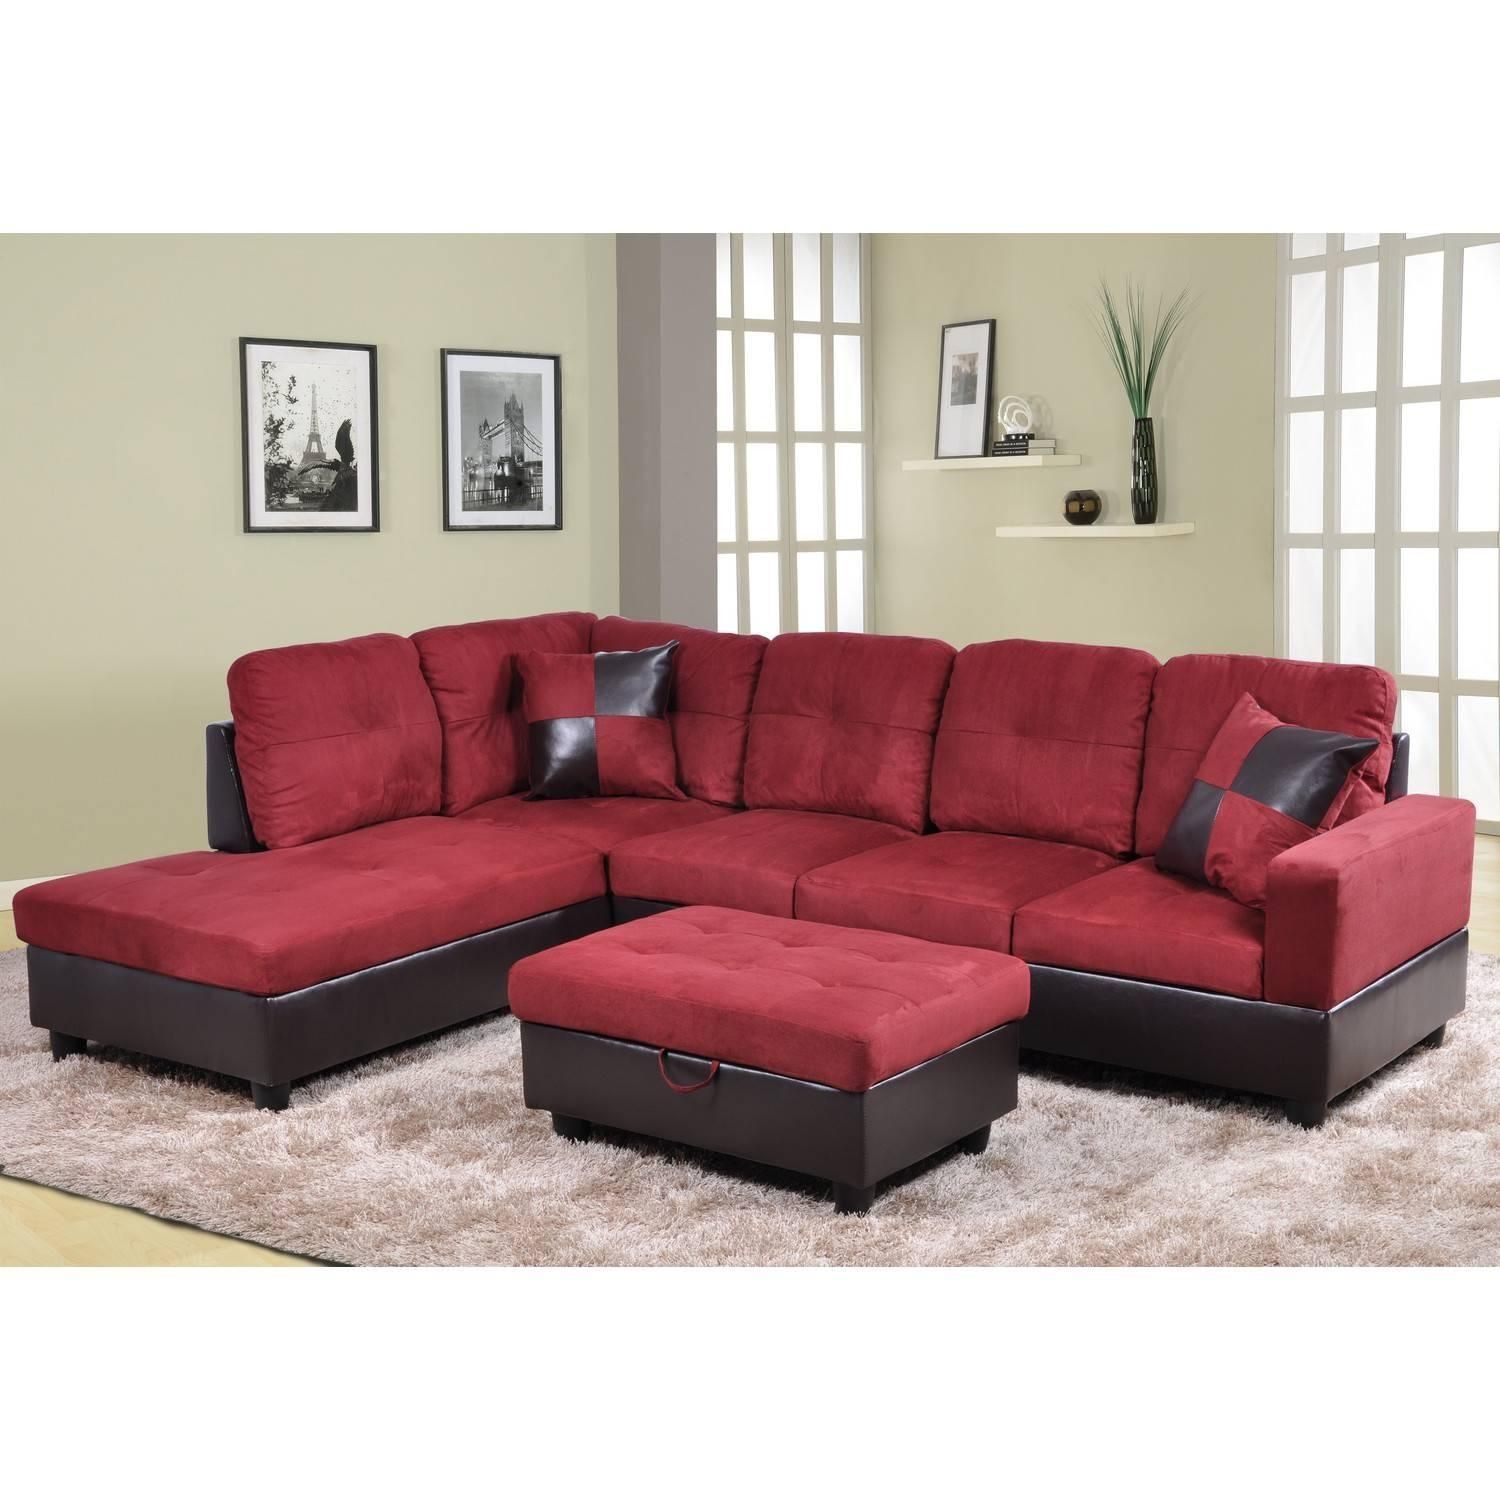 Sofa : Furniture: Beautiful Sectional Sofas Cheap For Living Room For Red Microfiber Sectional Sofas (Image 17 of 21)